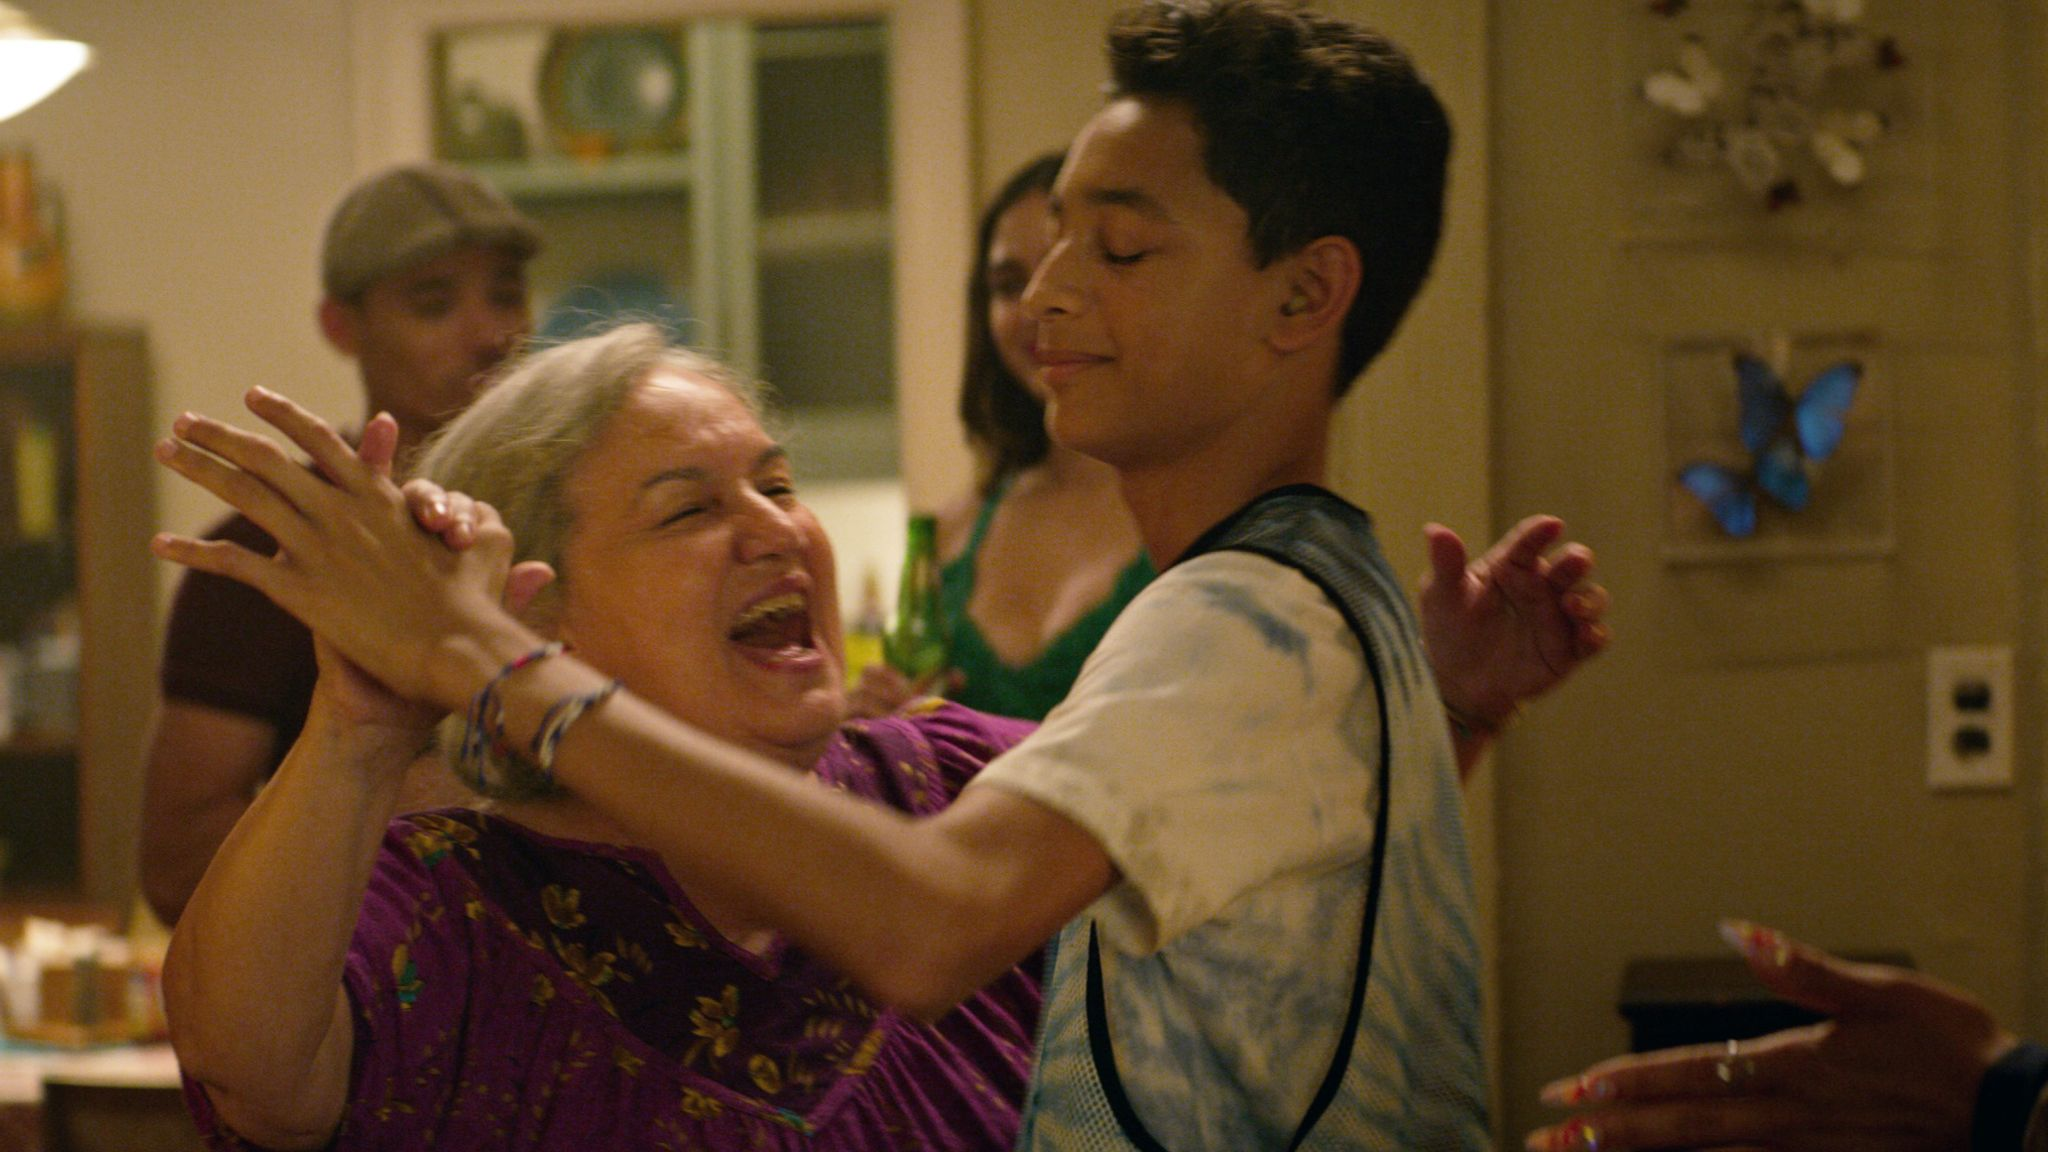 Abuela Claudia (Olga Merediz) and Sonny (Gregory Diaz III) share differing stories of immigration in the film. Pic: Warner Bros Studios